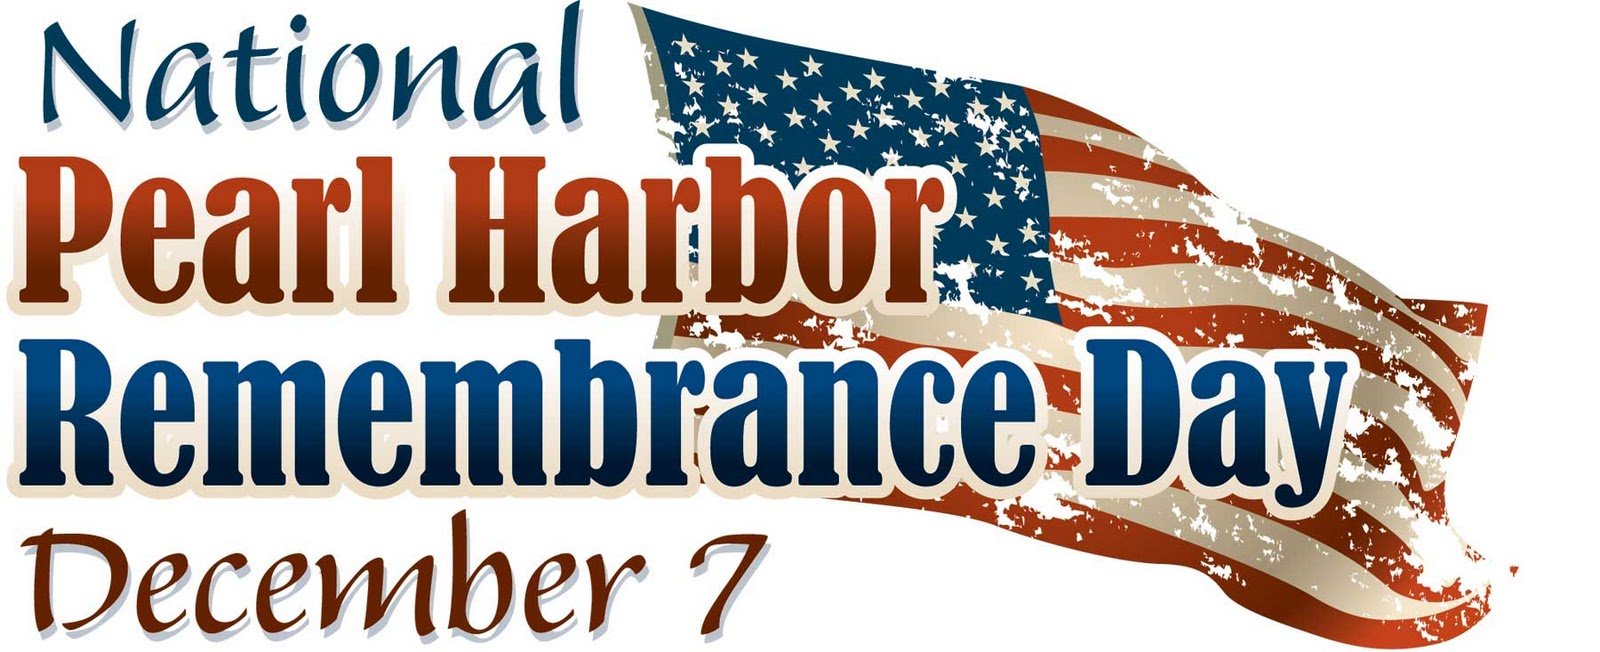 Free Harbor Cliparts, Download Free Clip Art, Free Clip Art on.